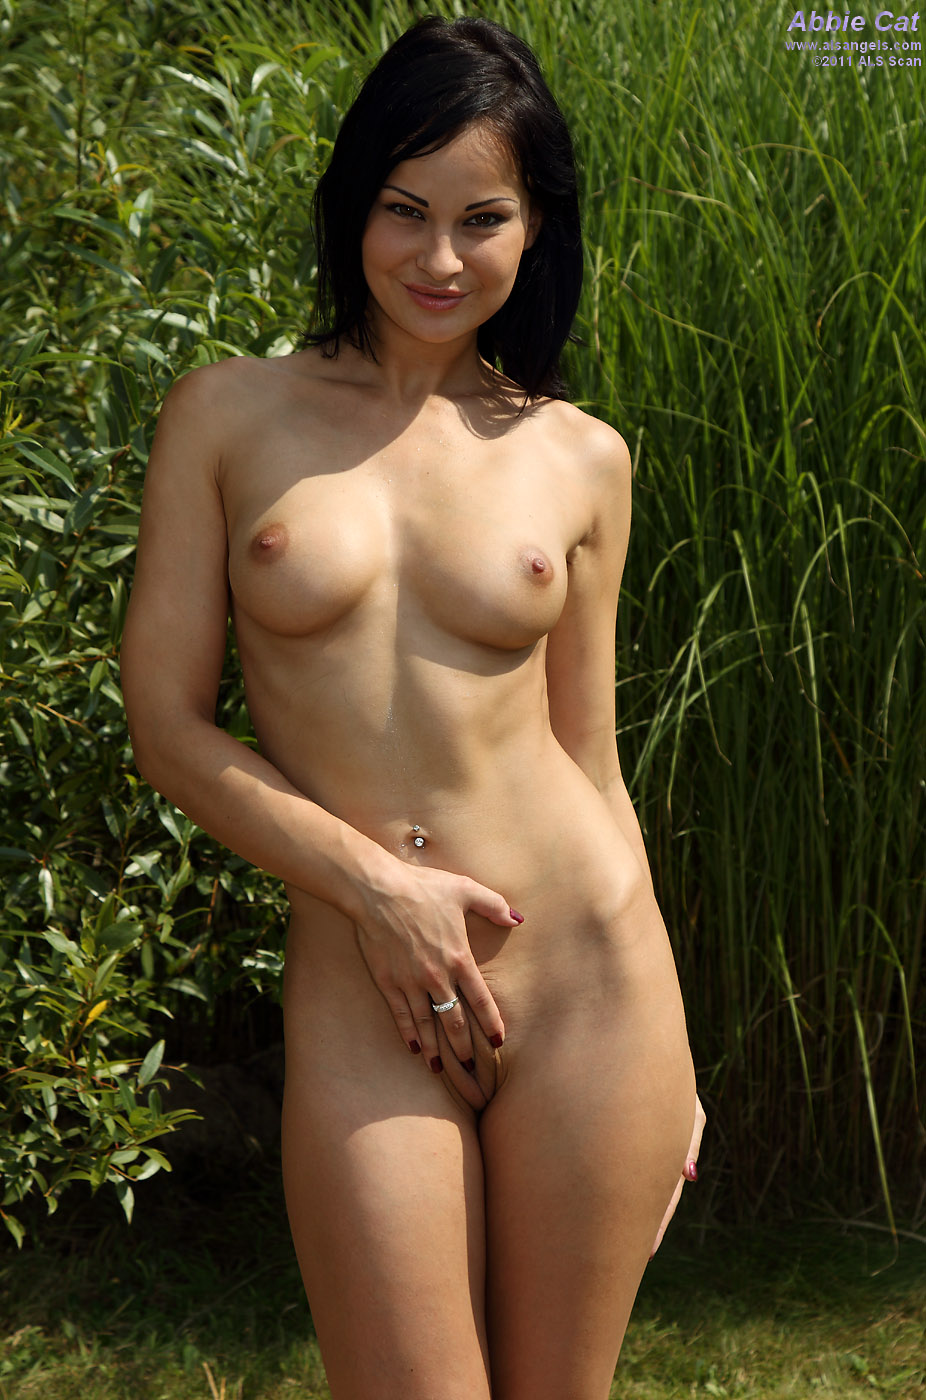 ALS Scan: http://thealsscan.com/als_scan/hottie_abbie_cat_toys_with_fruit_and_veggies/